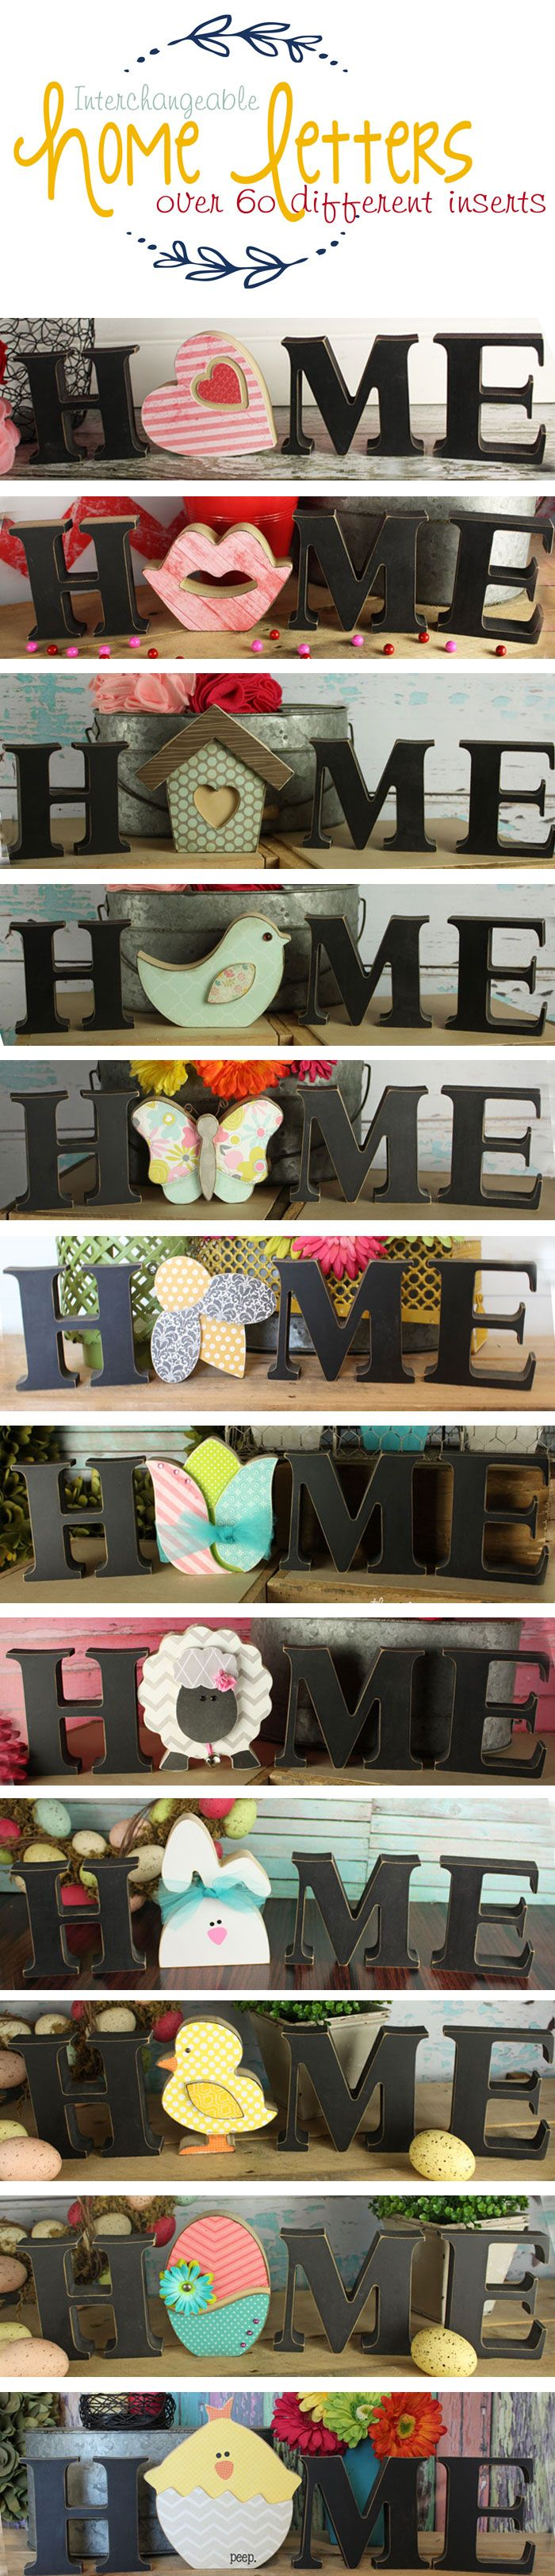 "Interchangeable HOME letter crafts. Pick from over 60 different inserts for the letter ""o"". Swap out the insert for every holiday/season. So cute!!"